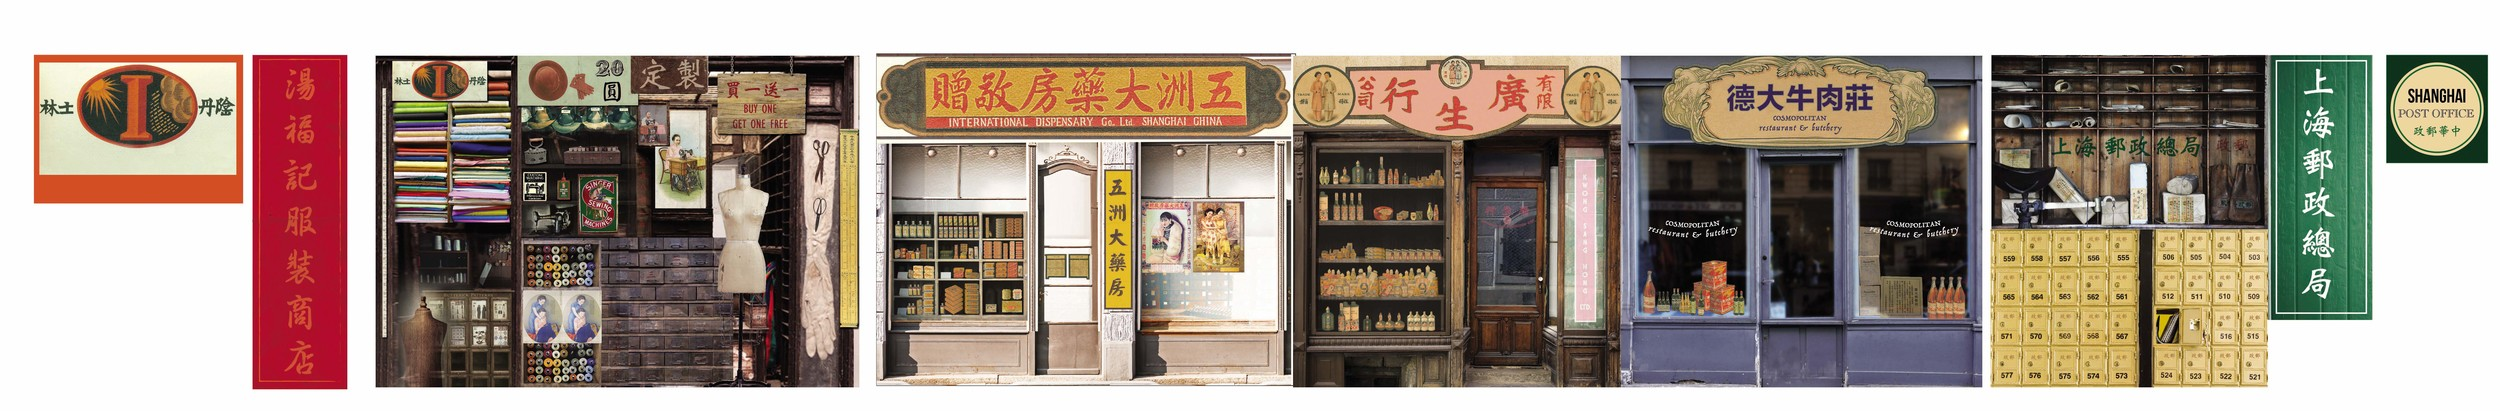 Real size old Shanghai shops created just for this event with real advertisement graphics from that time.